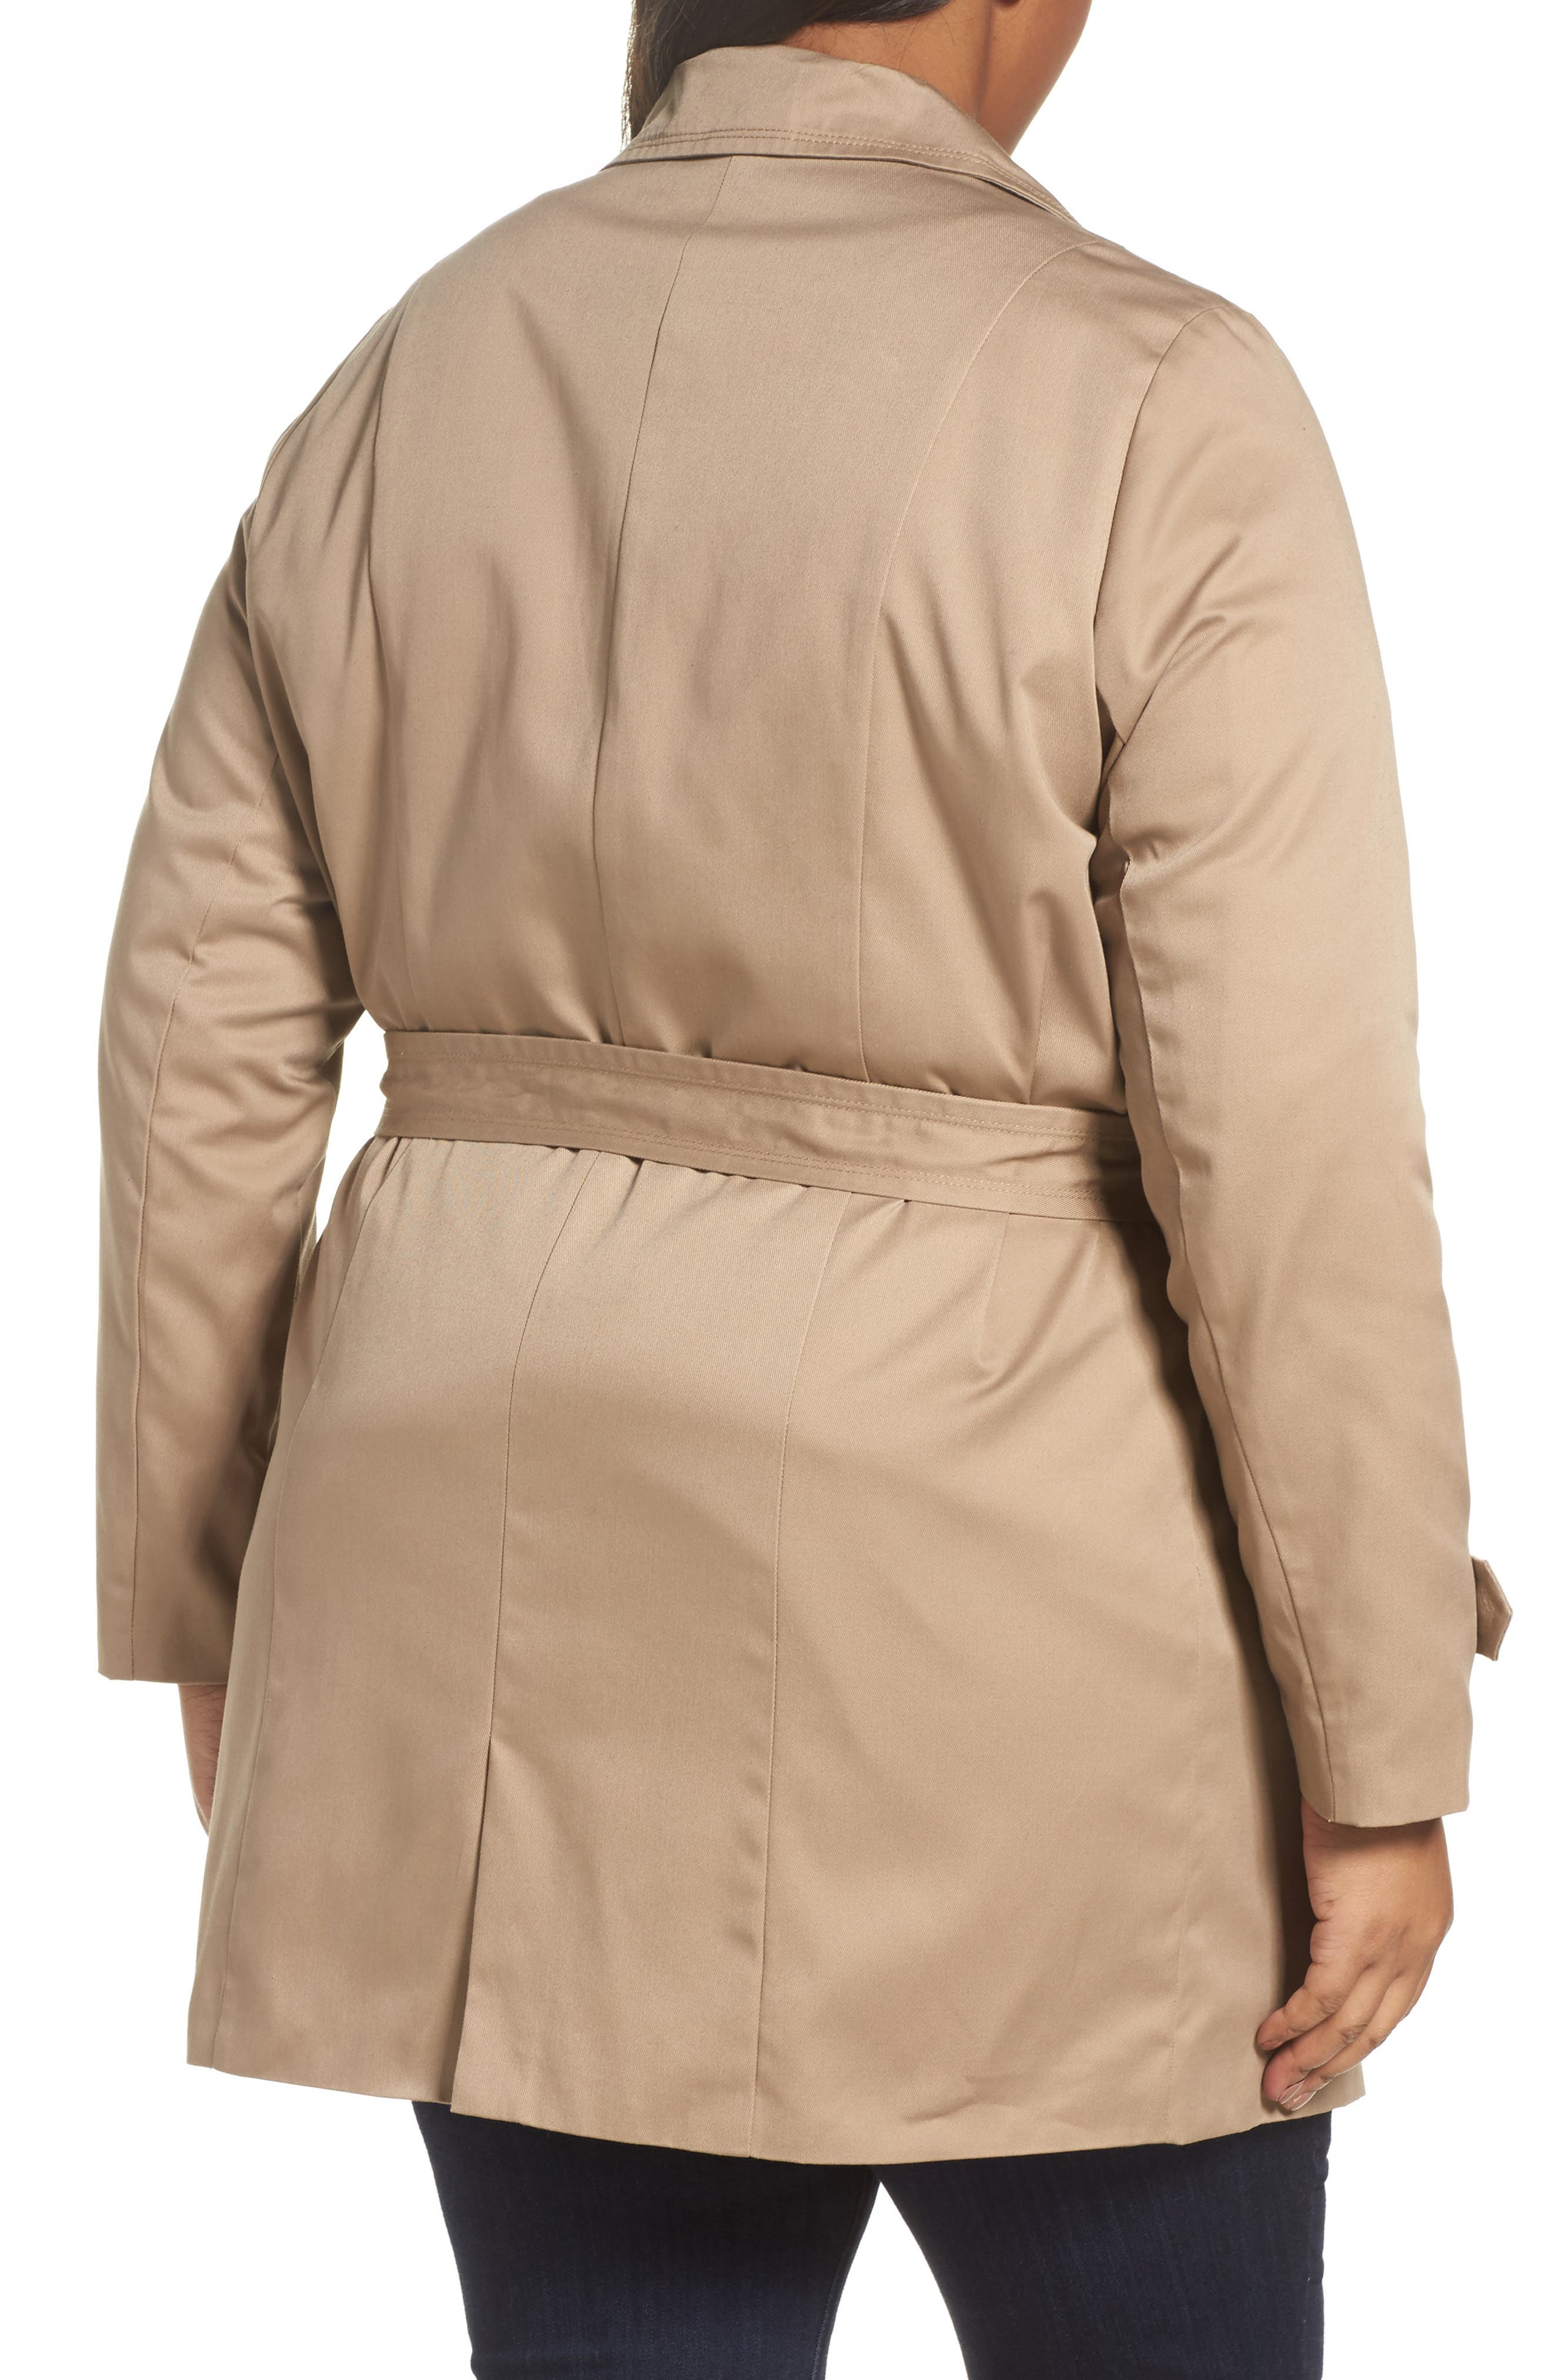 Trench Coat,                             Alternate thumbnail 2, color,                             251